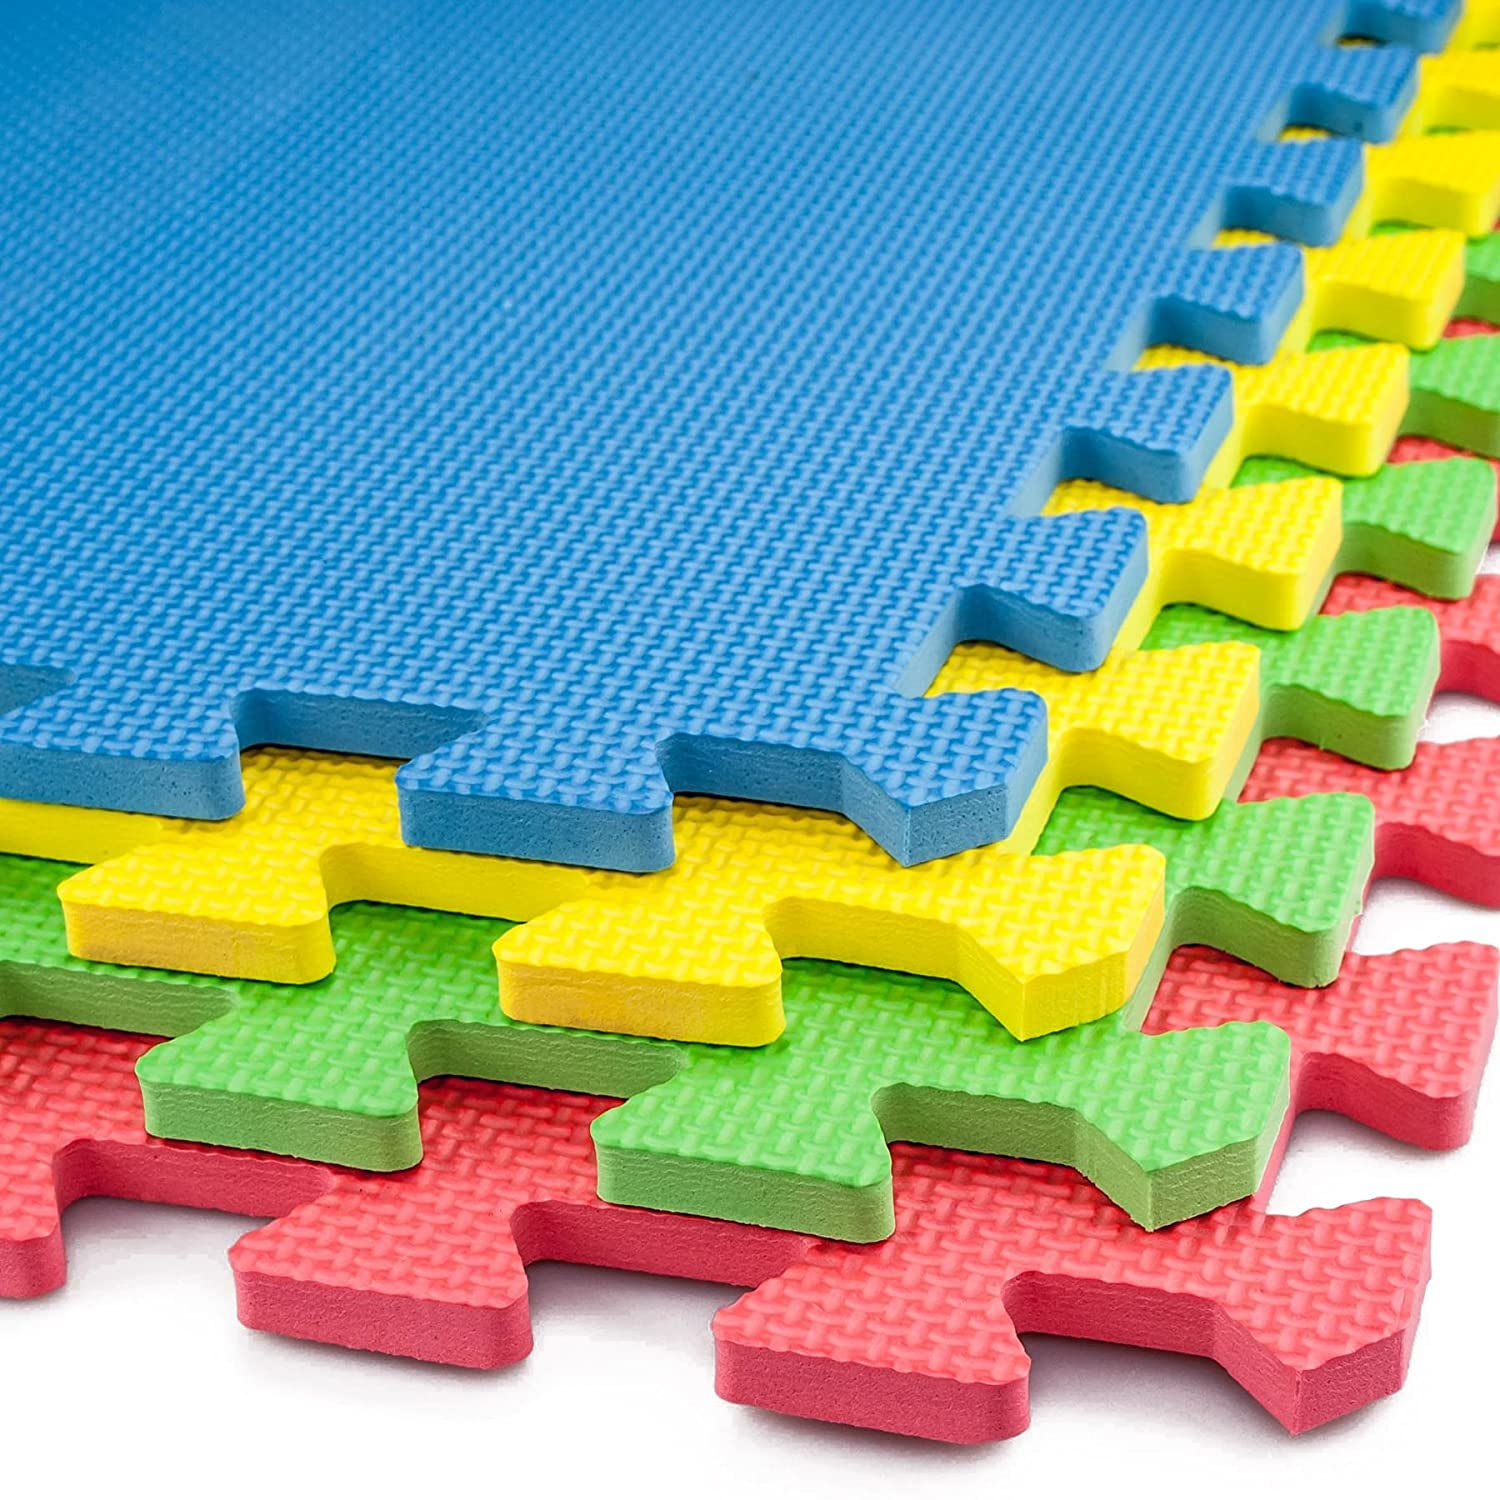 60*60CM SQ FT 8PCS Outdoor/Indoor Protective Soft Eva Interlocking Foam Mat Tiles Floor Mats for Gym, Play Area, Exercise, Yoga (Colorful cross)